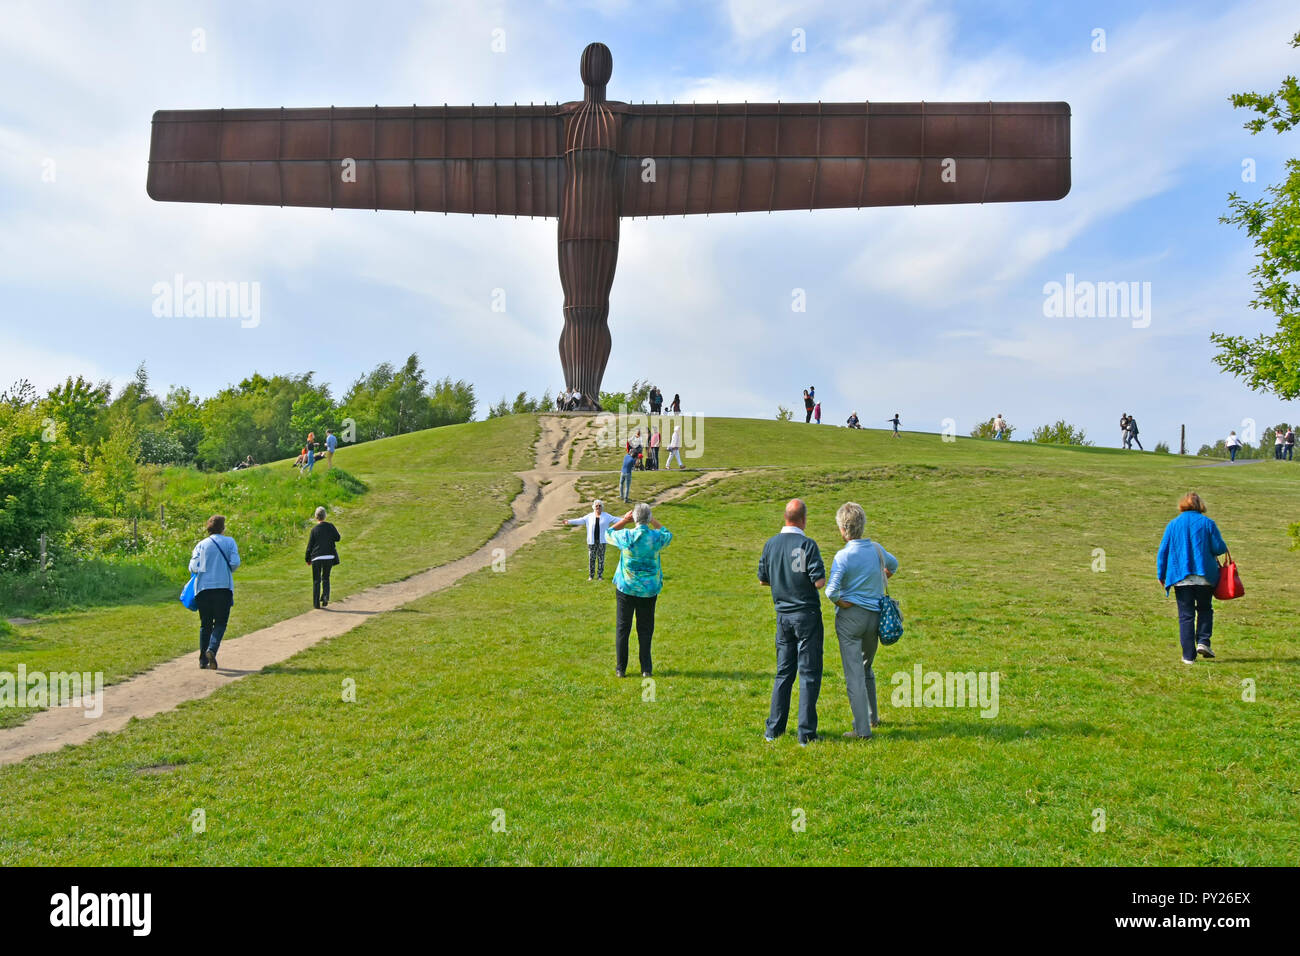 Rusty looking iconic Corten steel landmark sculpture Angel of the North by Antony Gormley people tourists posing & taking photos  Gateshead England UK - Stock Image